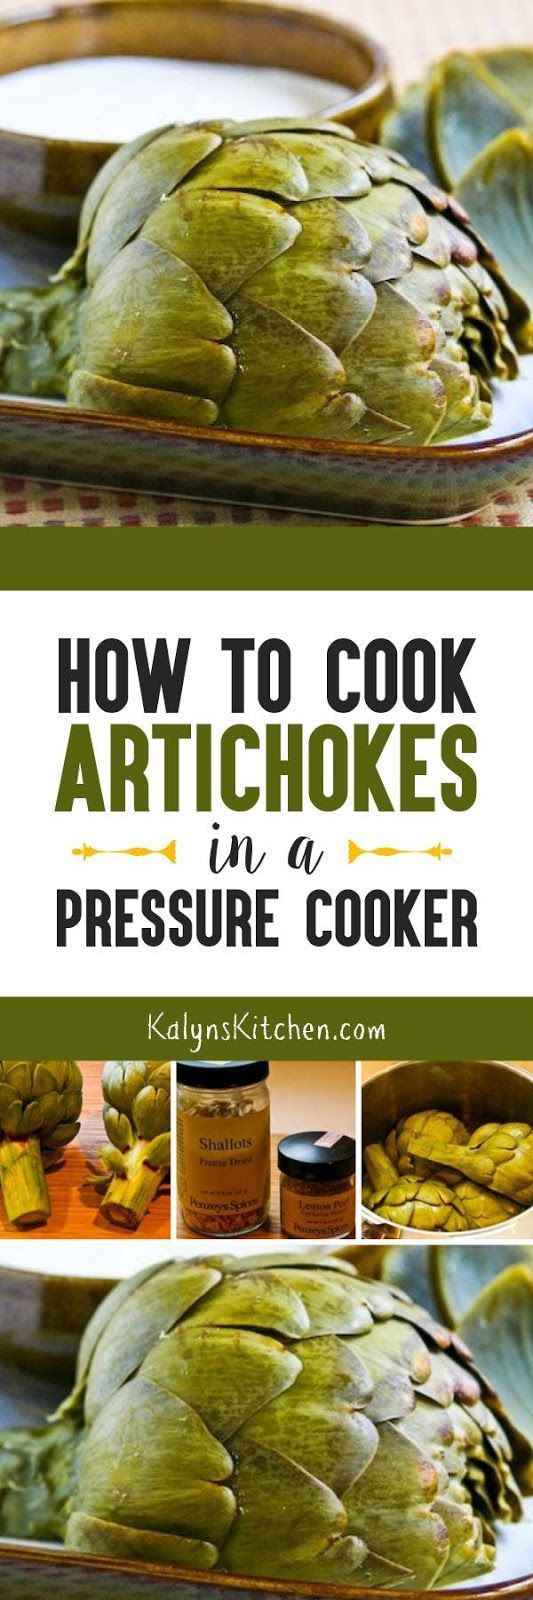 Whether you use the Instant Pot, Electric Pressure Cooker, or Stovetop Pressure Cooker, this post will show you How to Cook Artichokes in a Pressure Cooker! Artichokes are great in the spring, so give this a try. [found on KalynsKitchen.com]